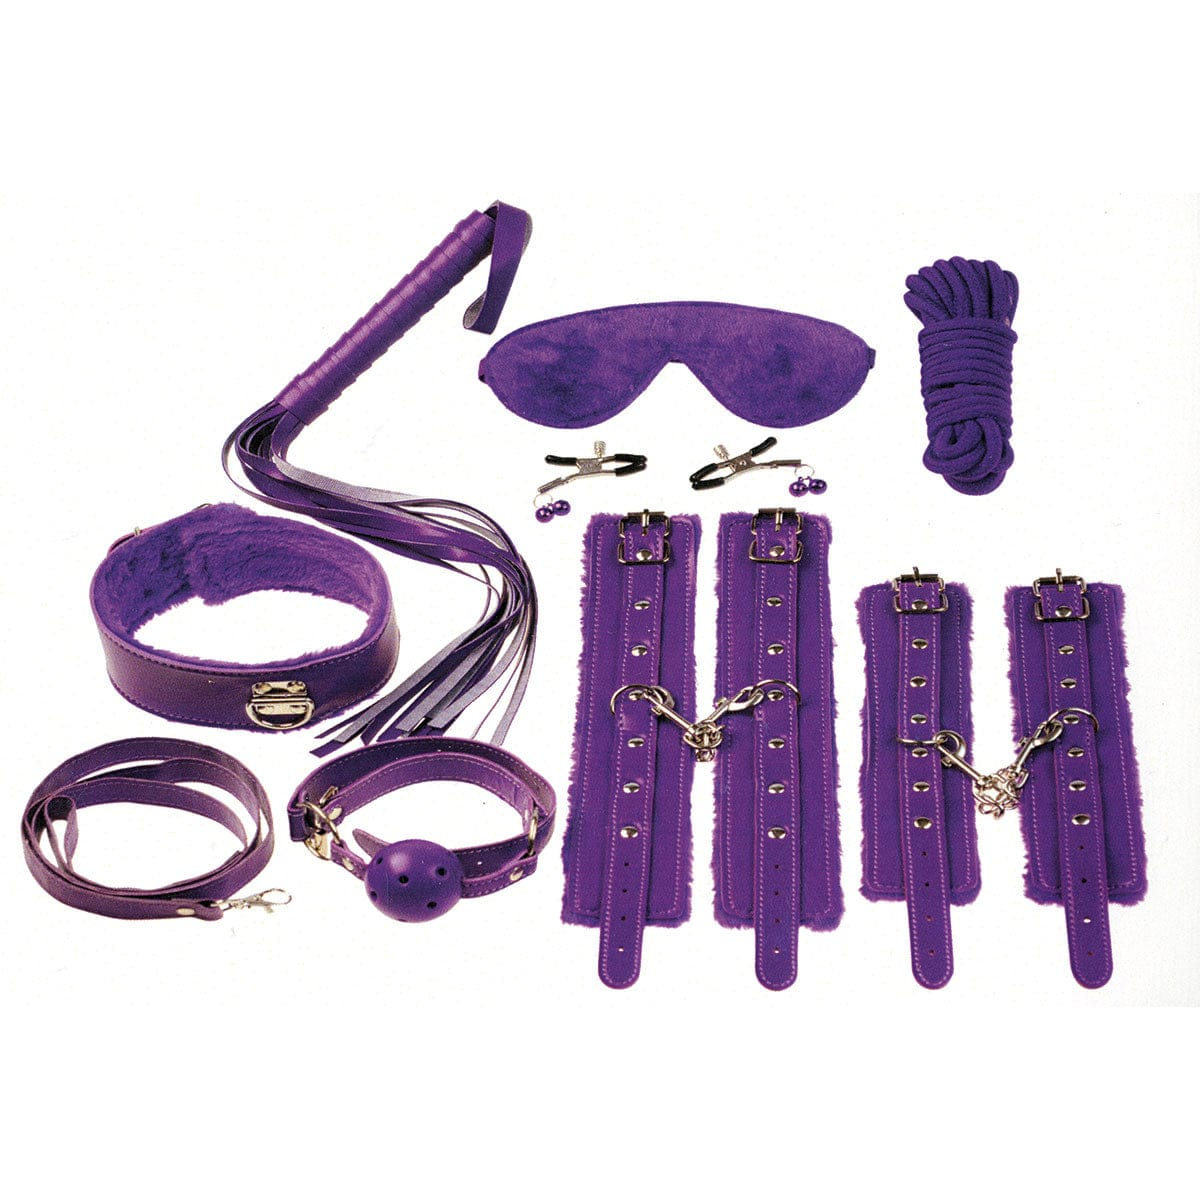 Everything Bondage Kit by Plesur Company - rolik